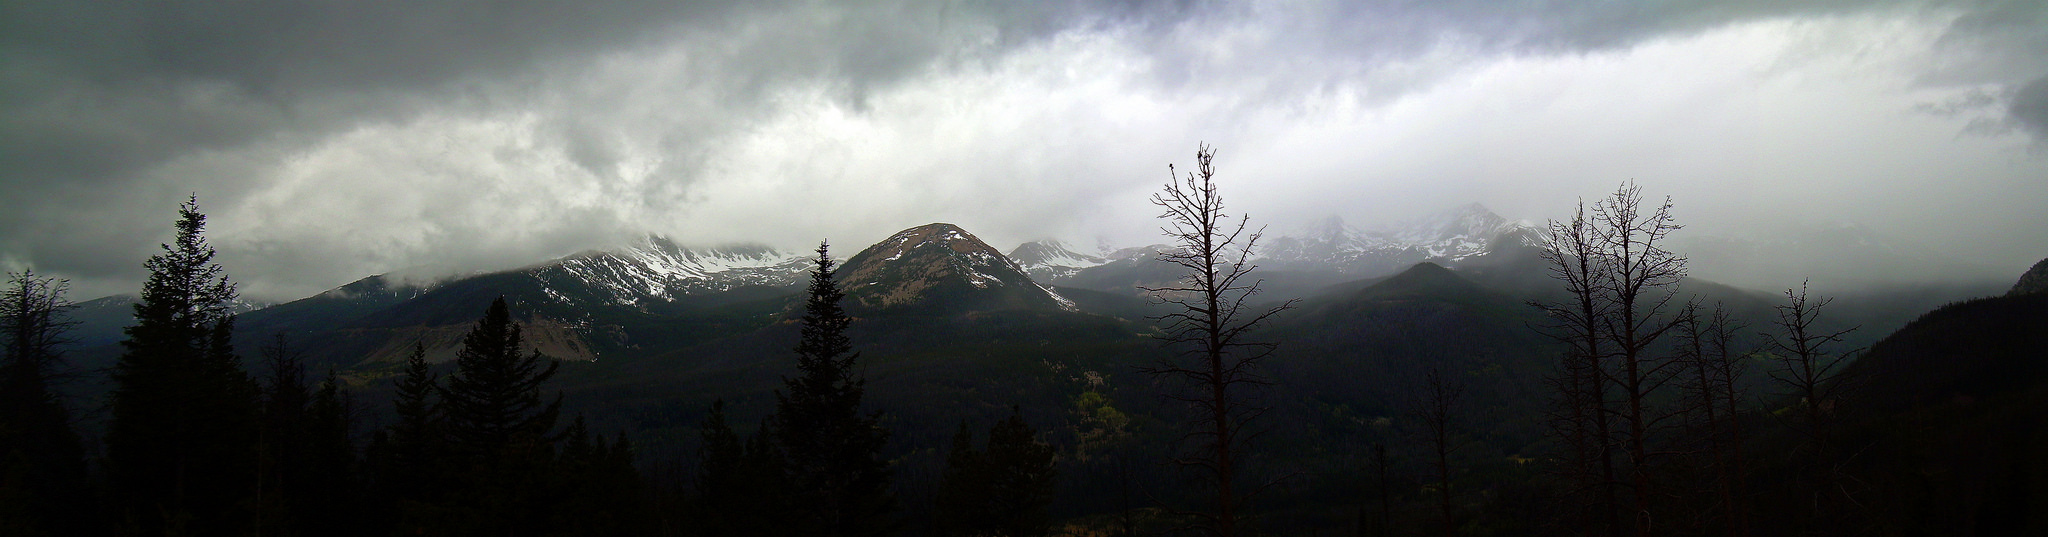 Storm gaining energy in RMNP